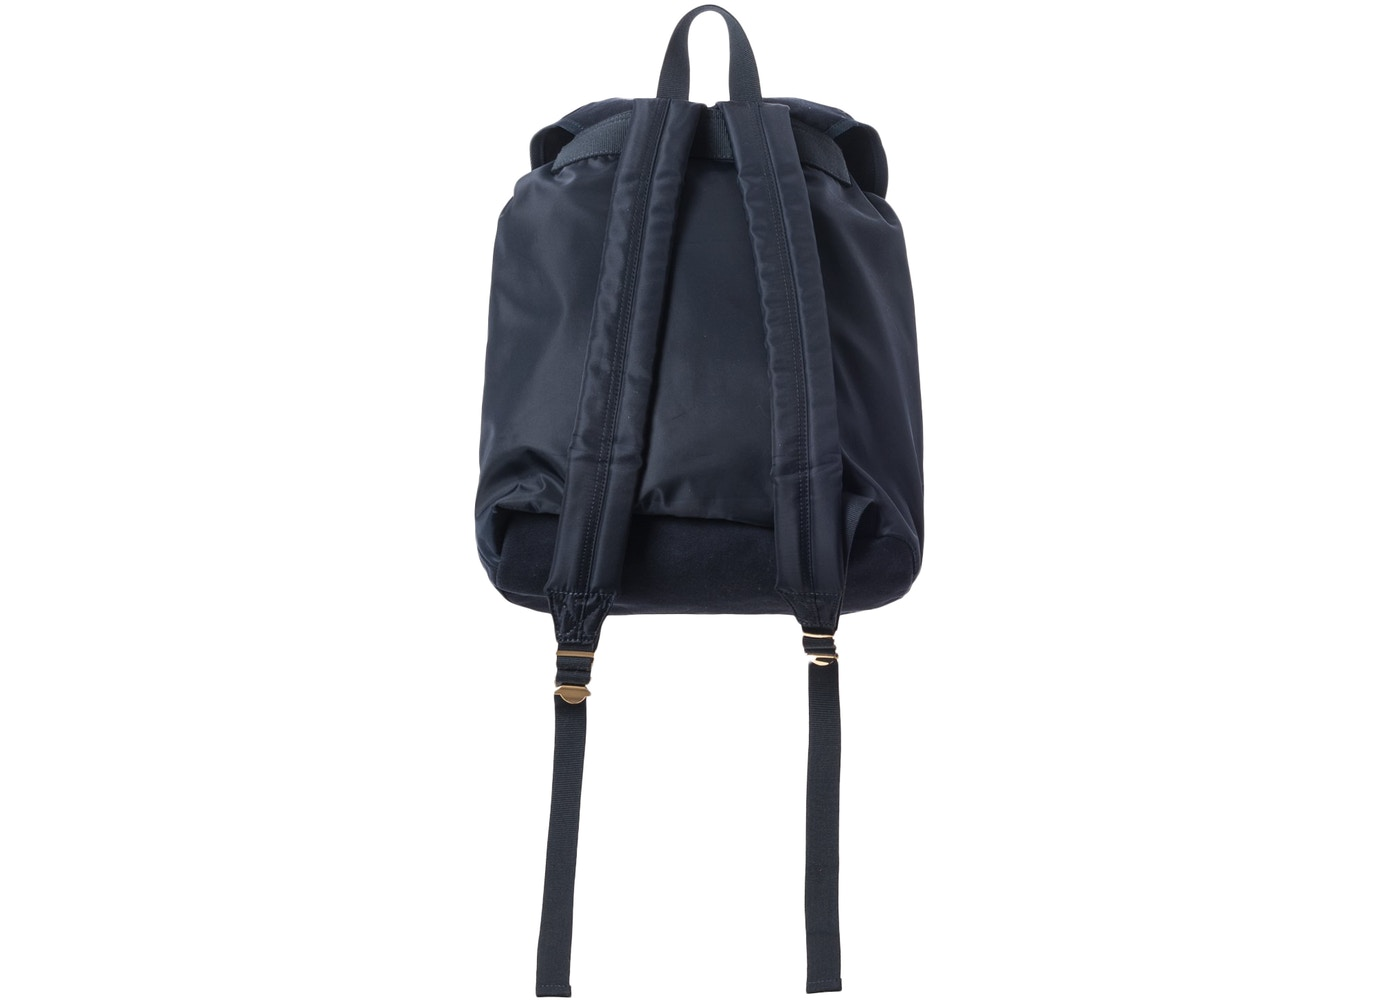 f09bbcc4 Kith Accessories - Buy & Sell Streetwear